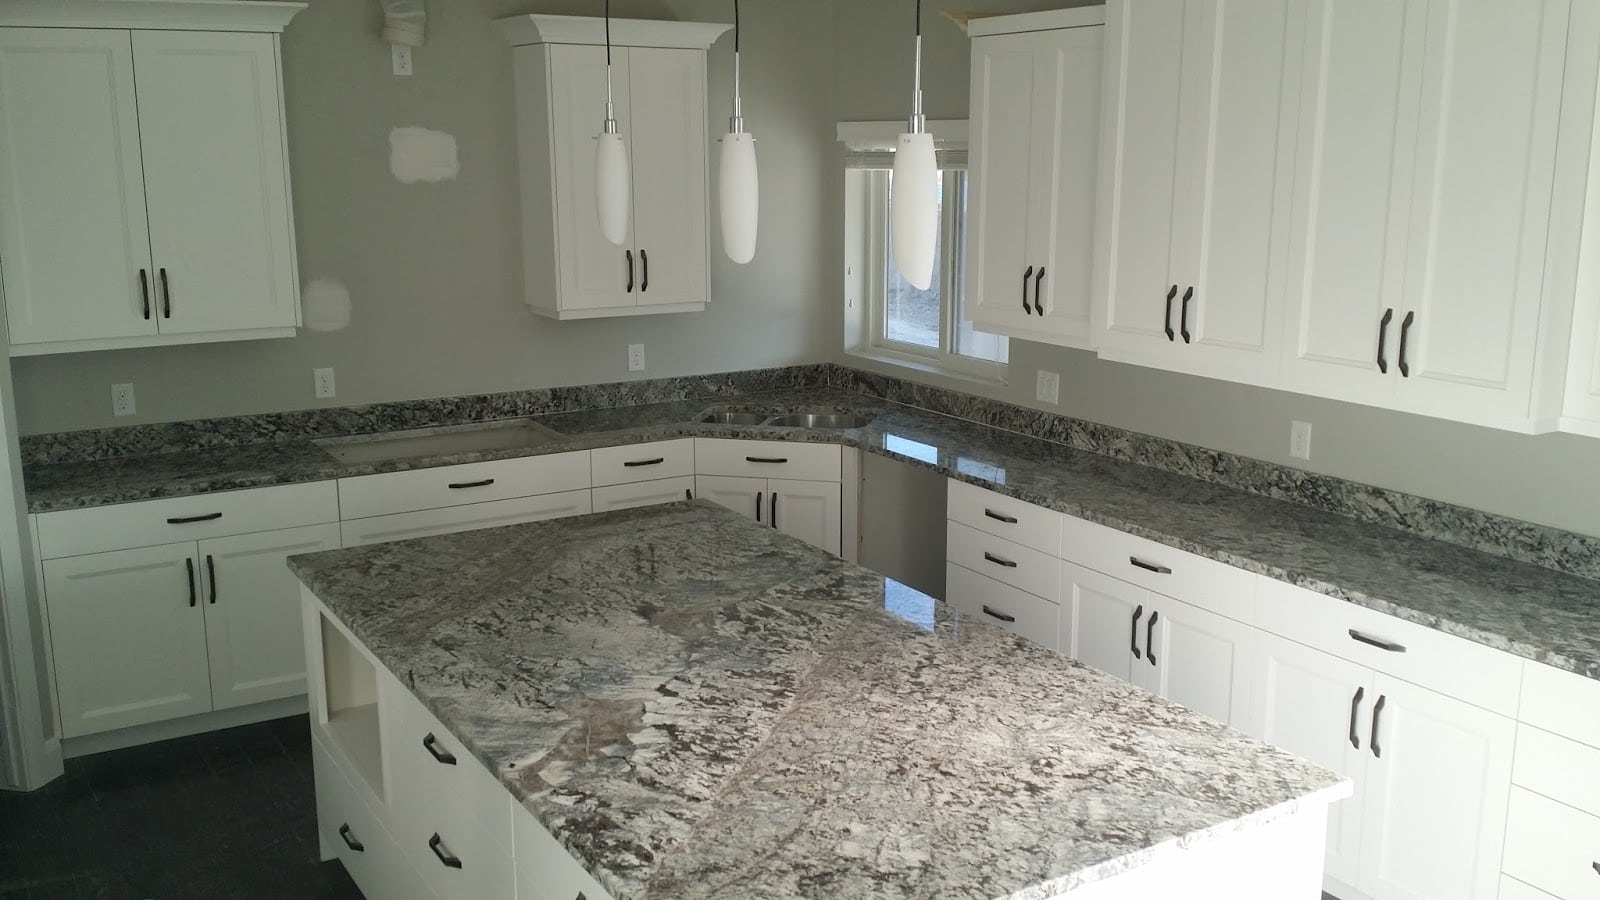 Advantages Of Buying Quartz Countertops Granite Countertops Chicago Il Quartz Countertops Chicago Kitchen Countertops Chicago Il